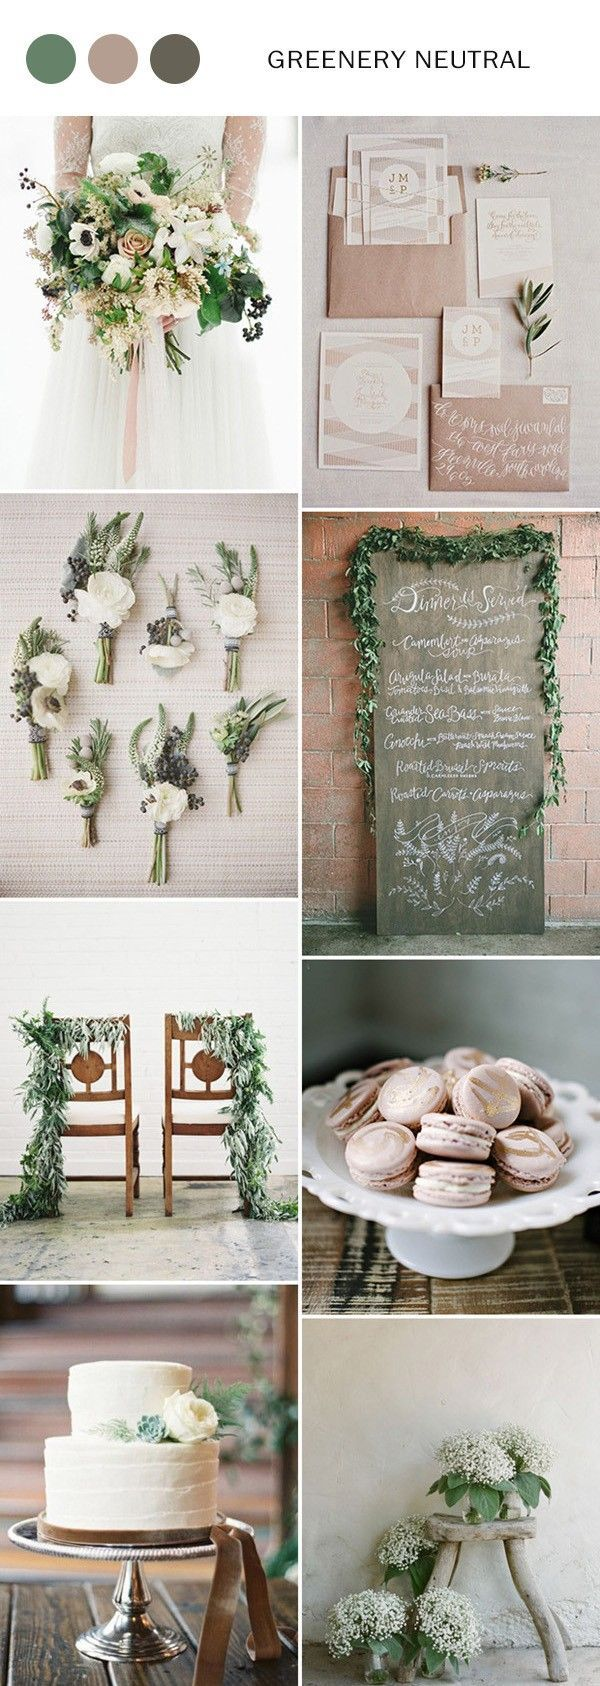 Wedding decorations using pallets october 2018 Top  Wedding Color Ideas for  Trends  Neutral wedding colors